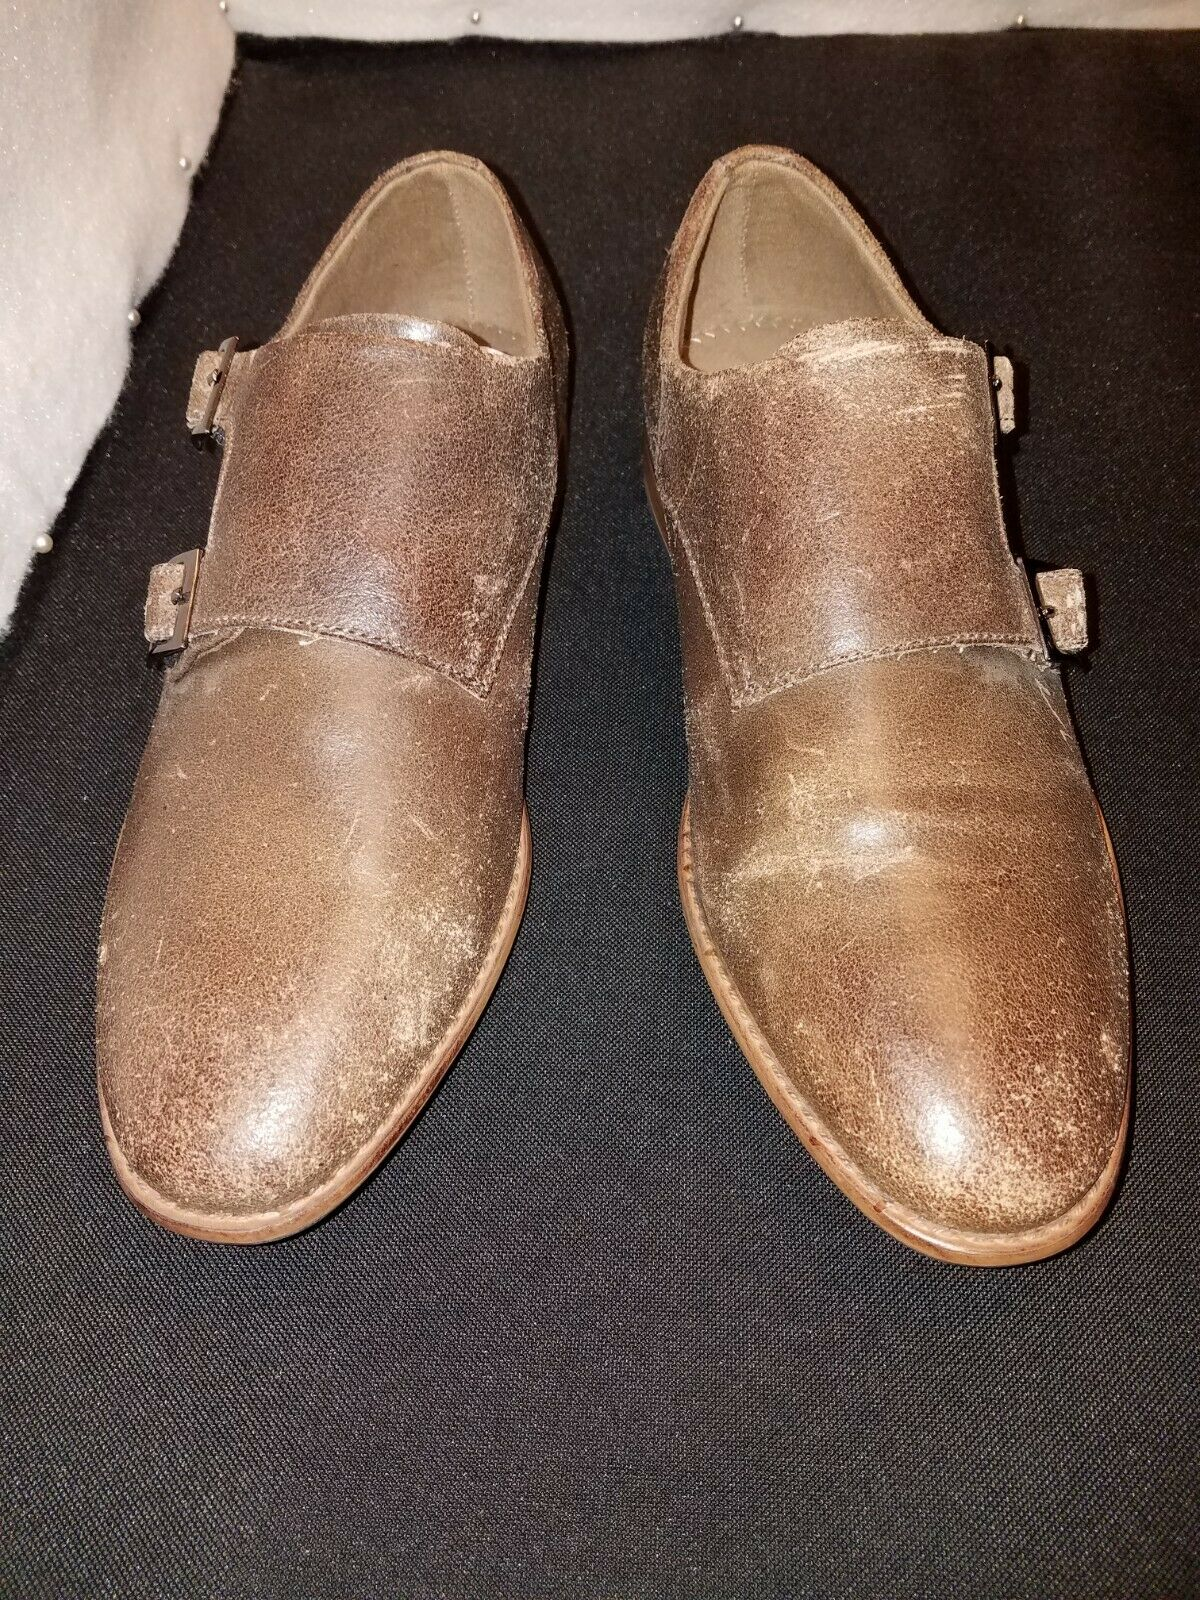 NWOB US9 J75 JUMP MADISON Brown Distressed Lea. Double Buckle MONK Strap SHOES